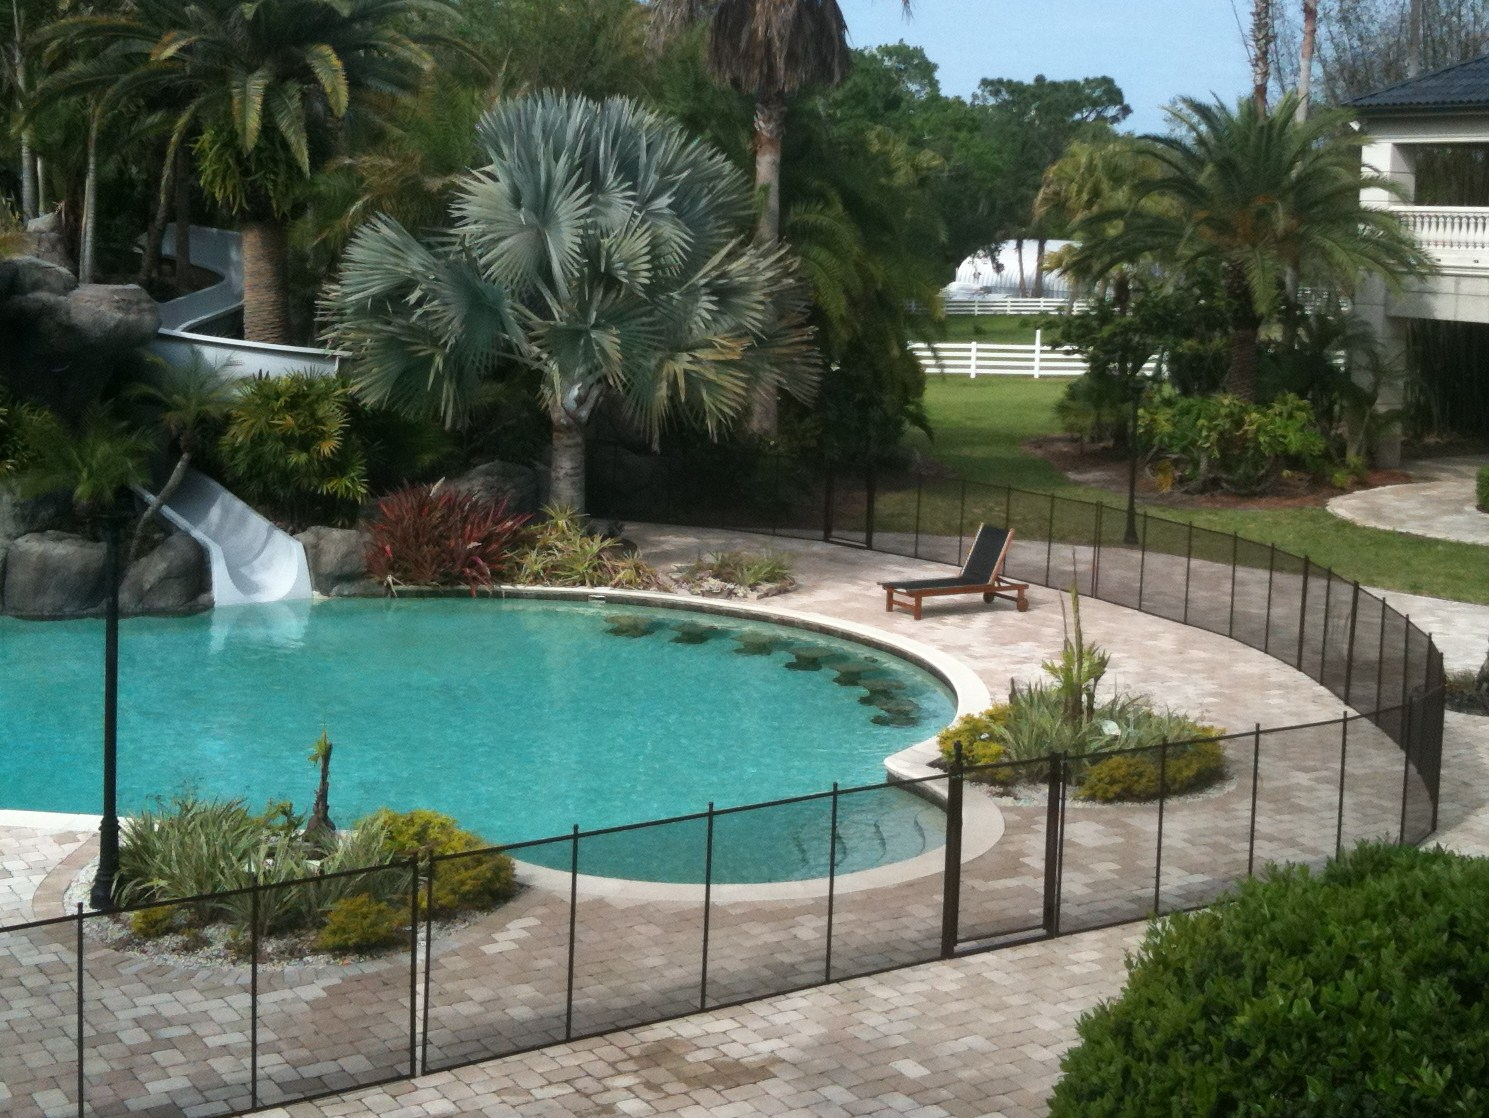 Pool safety fence company guard of tampa bay earns a